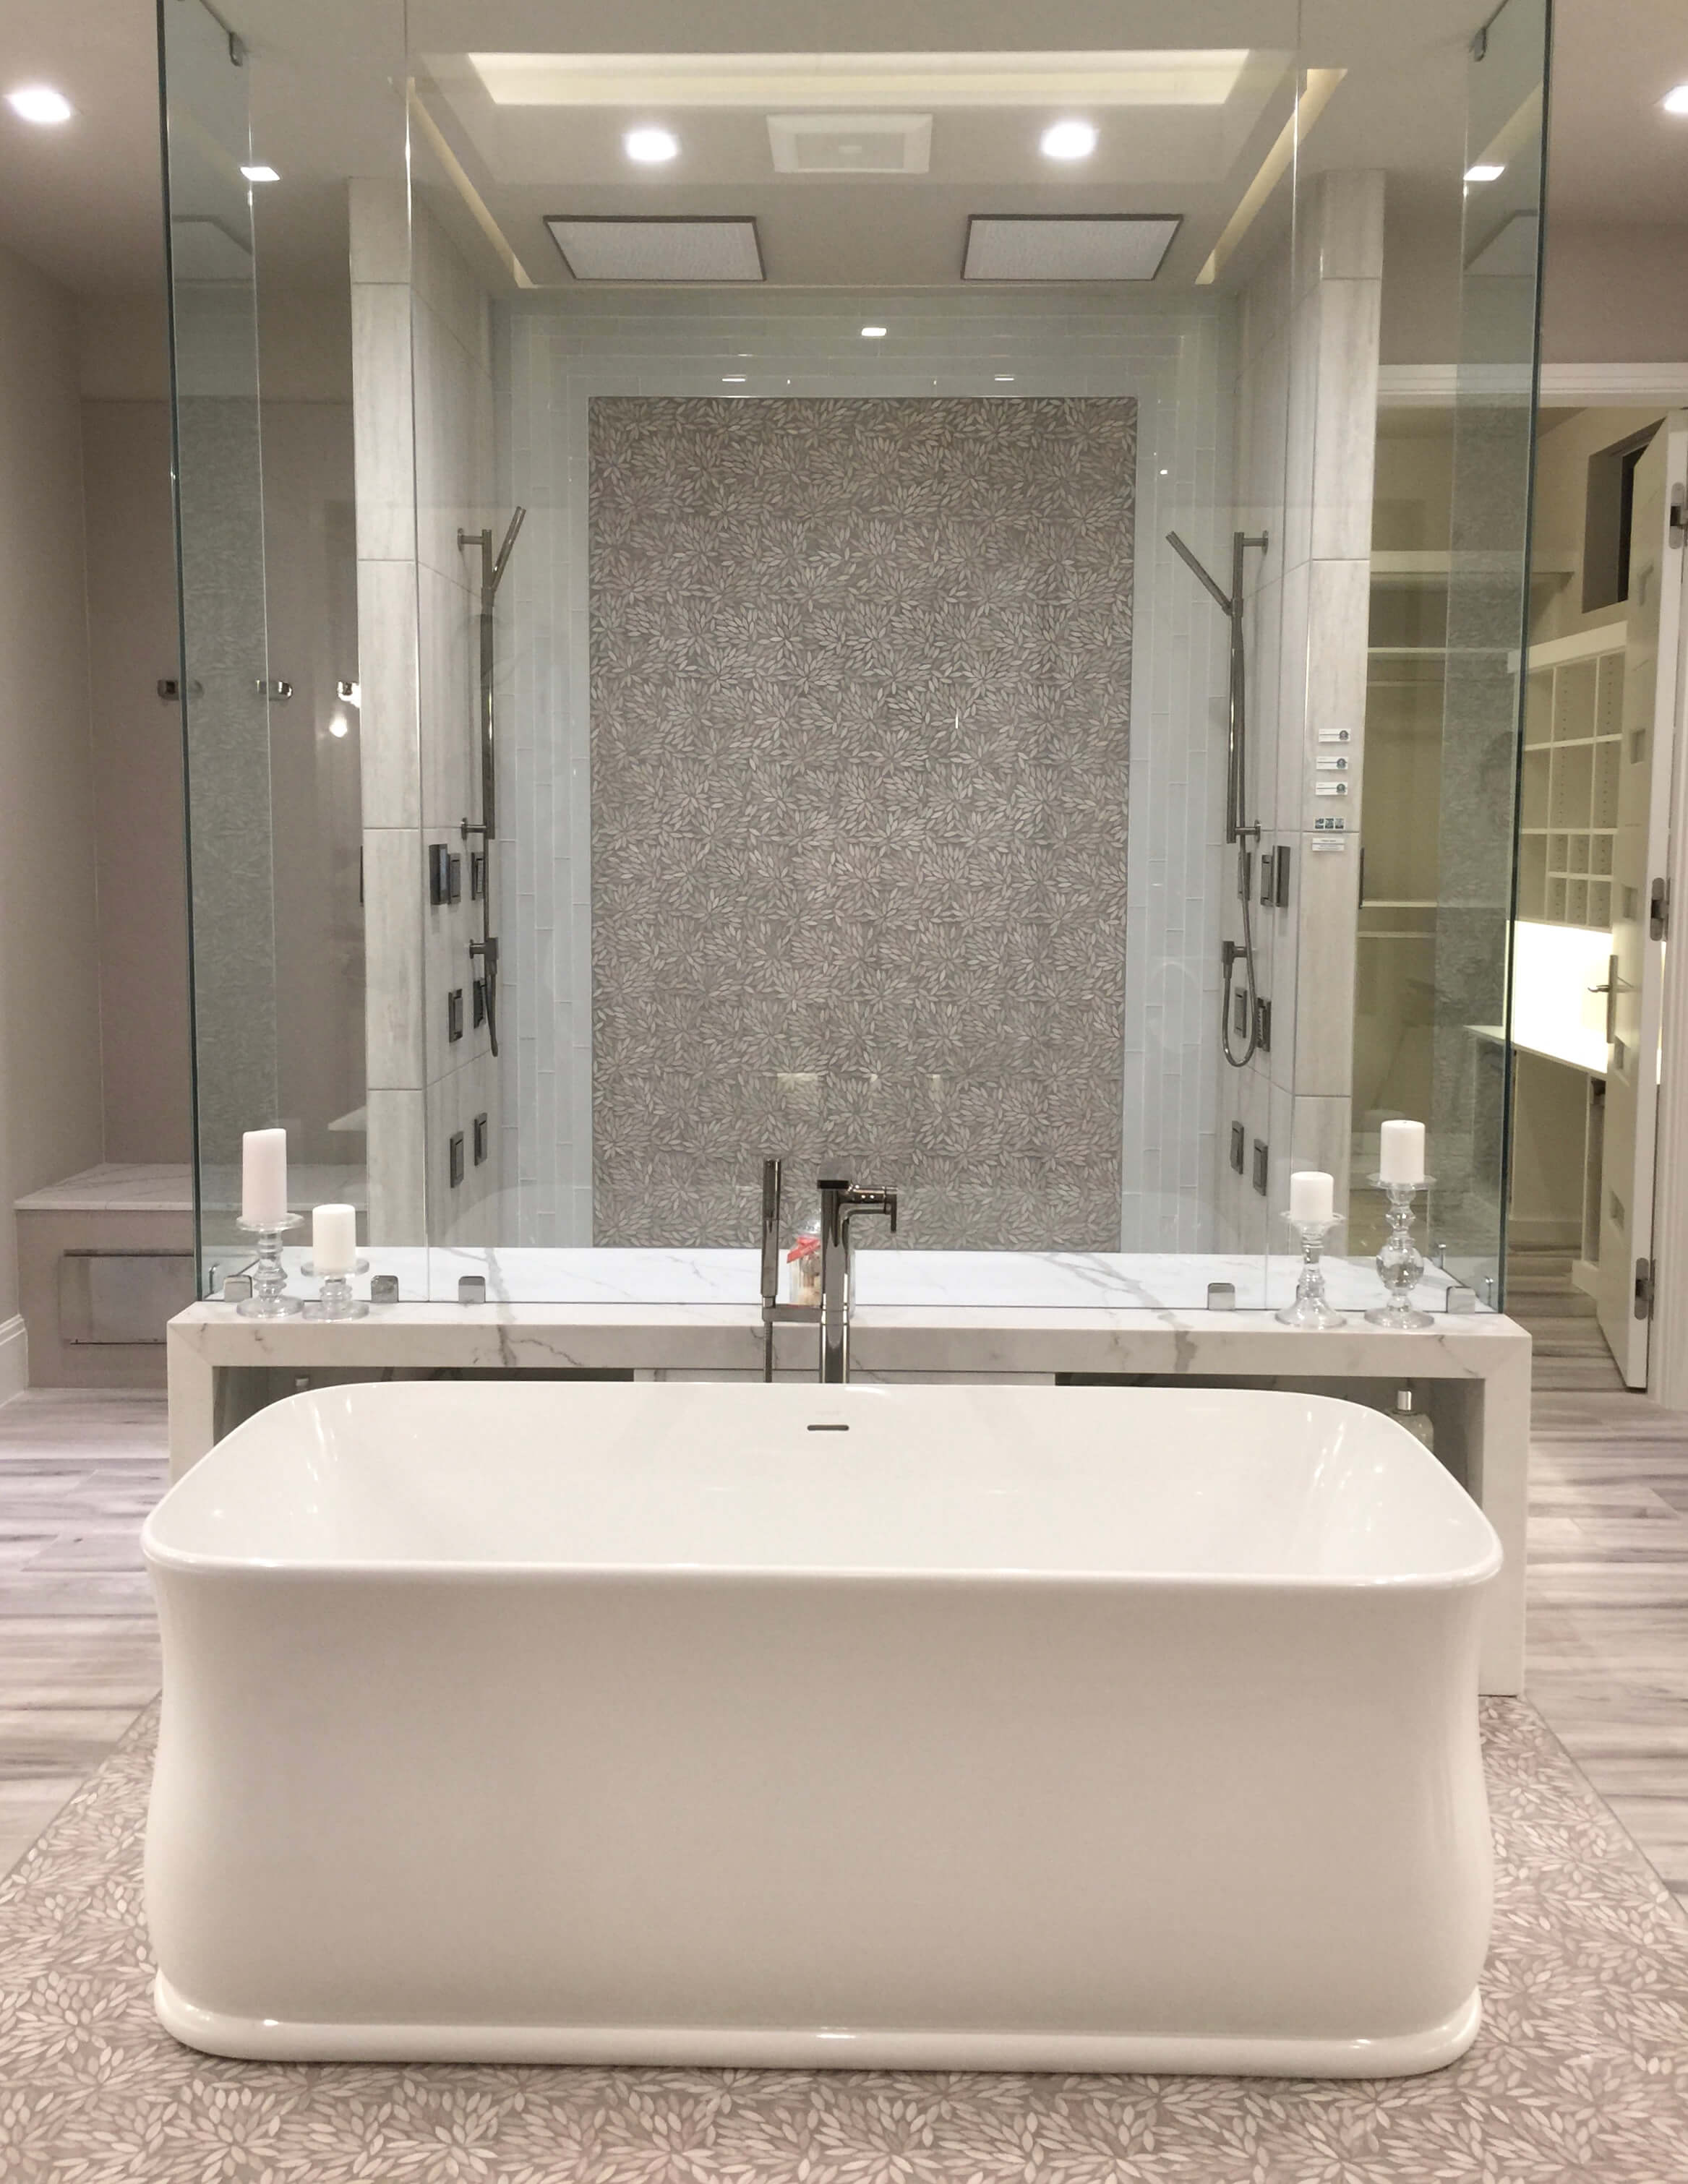 The lovely curves of this free standing tub balance the hard lines of the shower in this bathroom in The New American Home, seen at KBIS 2018. #tub #freestandingtub #bathroomdesign #bathroomideas